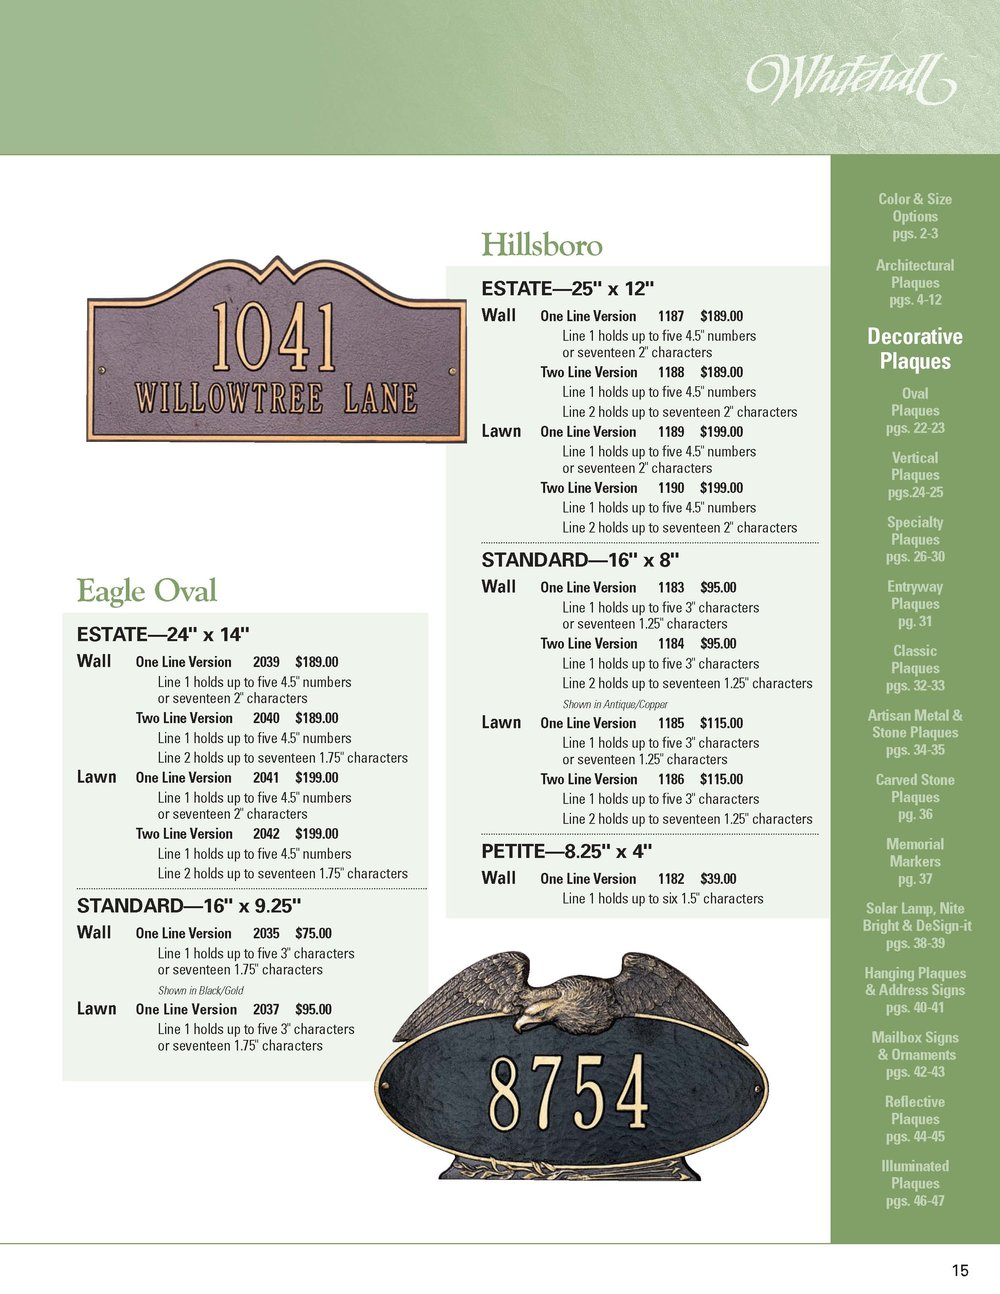 whitehall_catalog_pers_Page_15.jpg